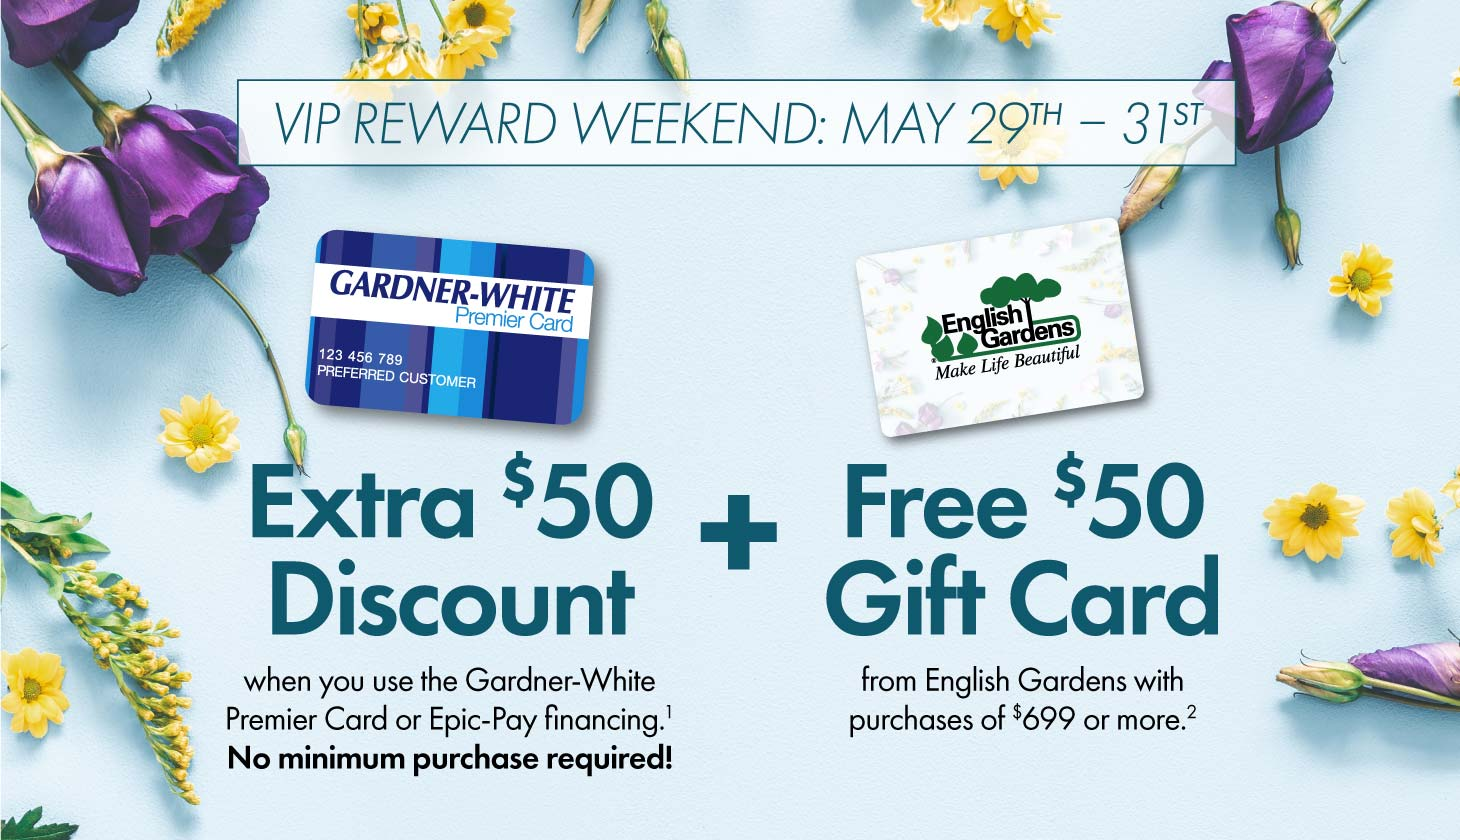 May 29 - 31: VIP Weekend – Extra $50 Discount when you use our financing + $50 Gift Card from English Gardens. Details below.